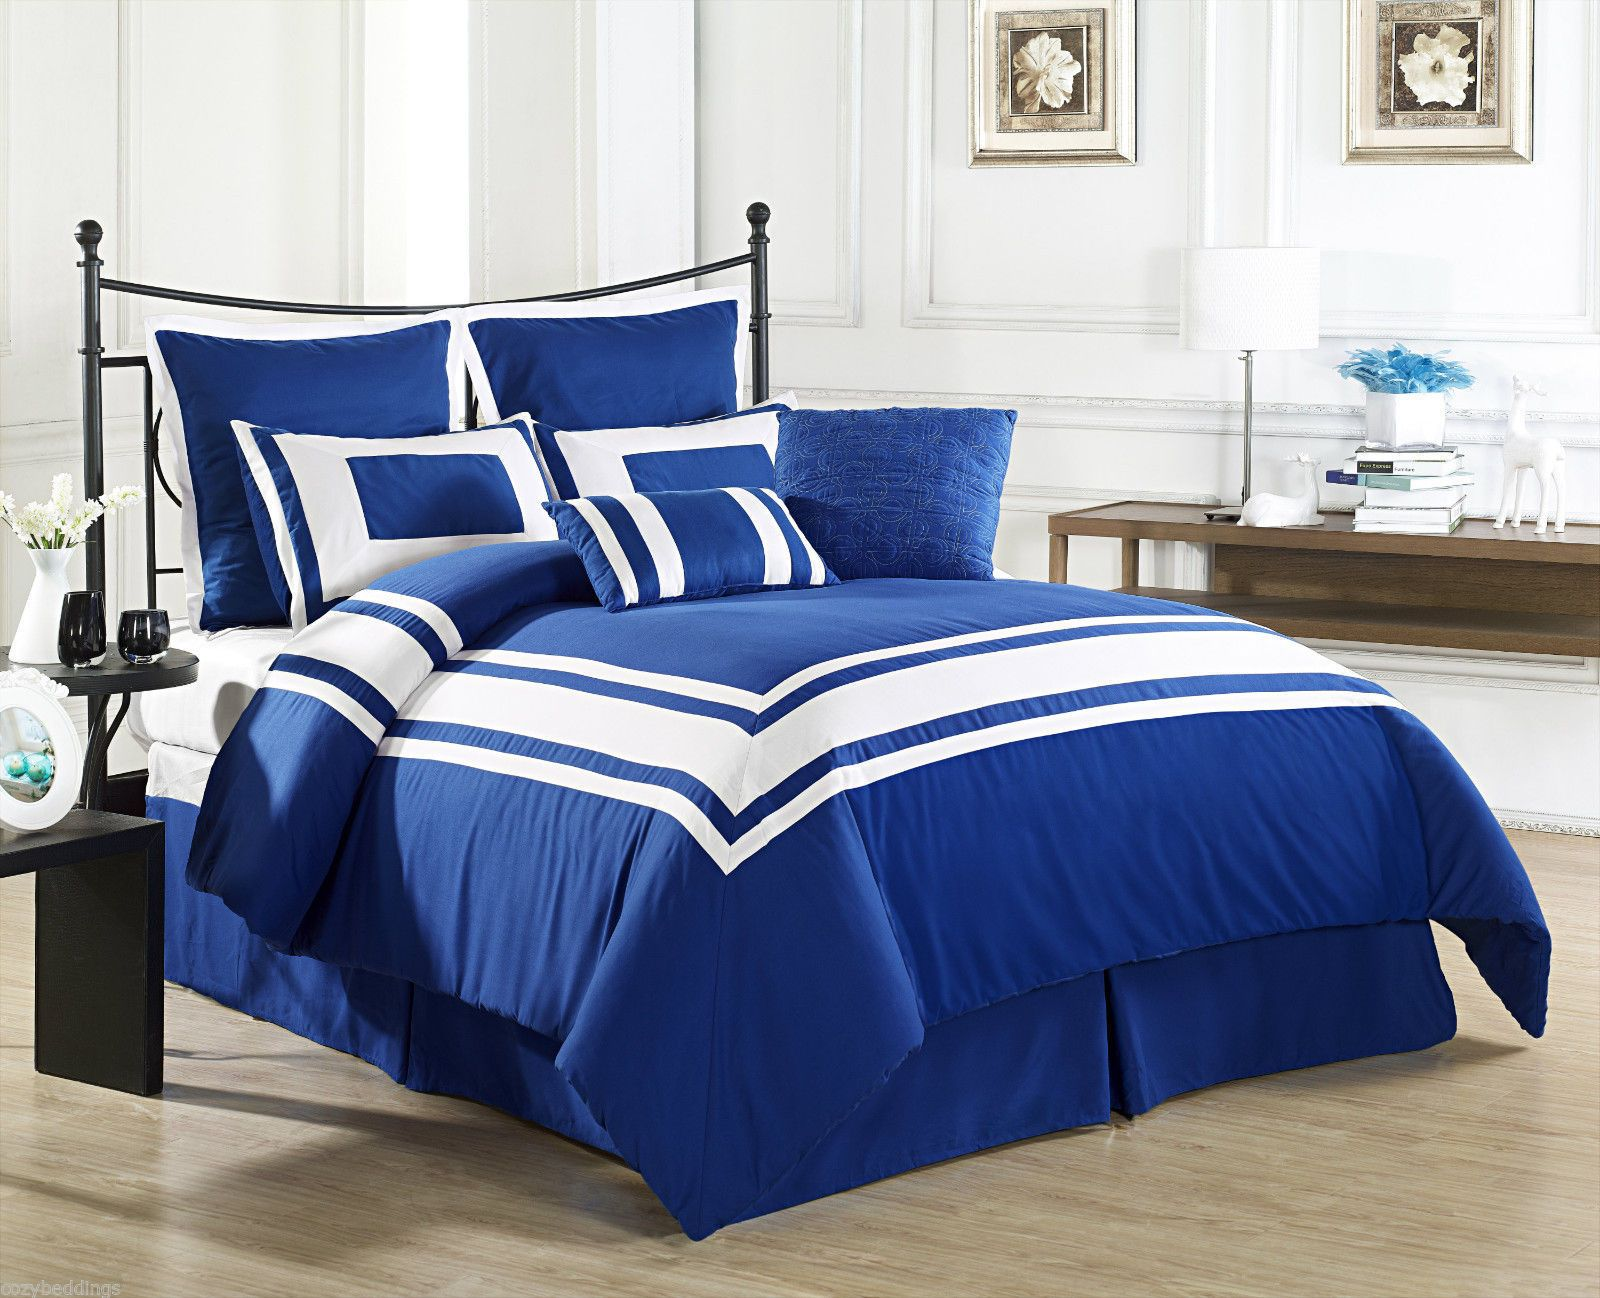 Lux Decor Royal Blue Queen Size Bed 8 Piece Comforter Set White Stripe Bedding Full Queen Blue Comforter Sets Blue Bedding Sets Blue And White Bedding